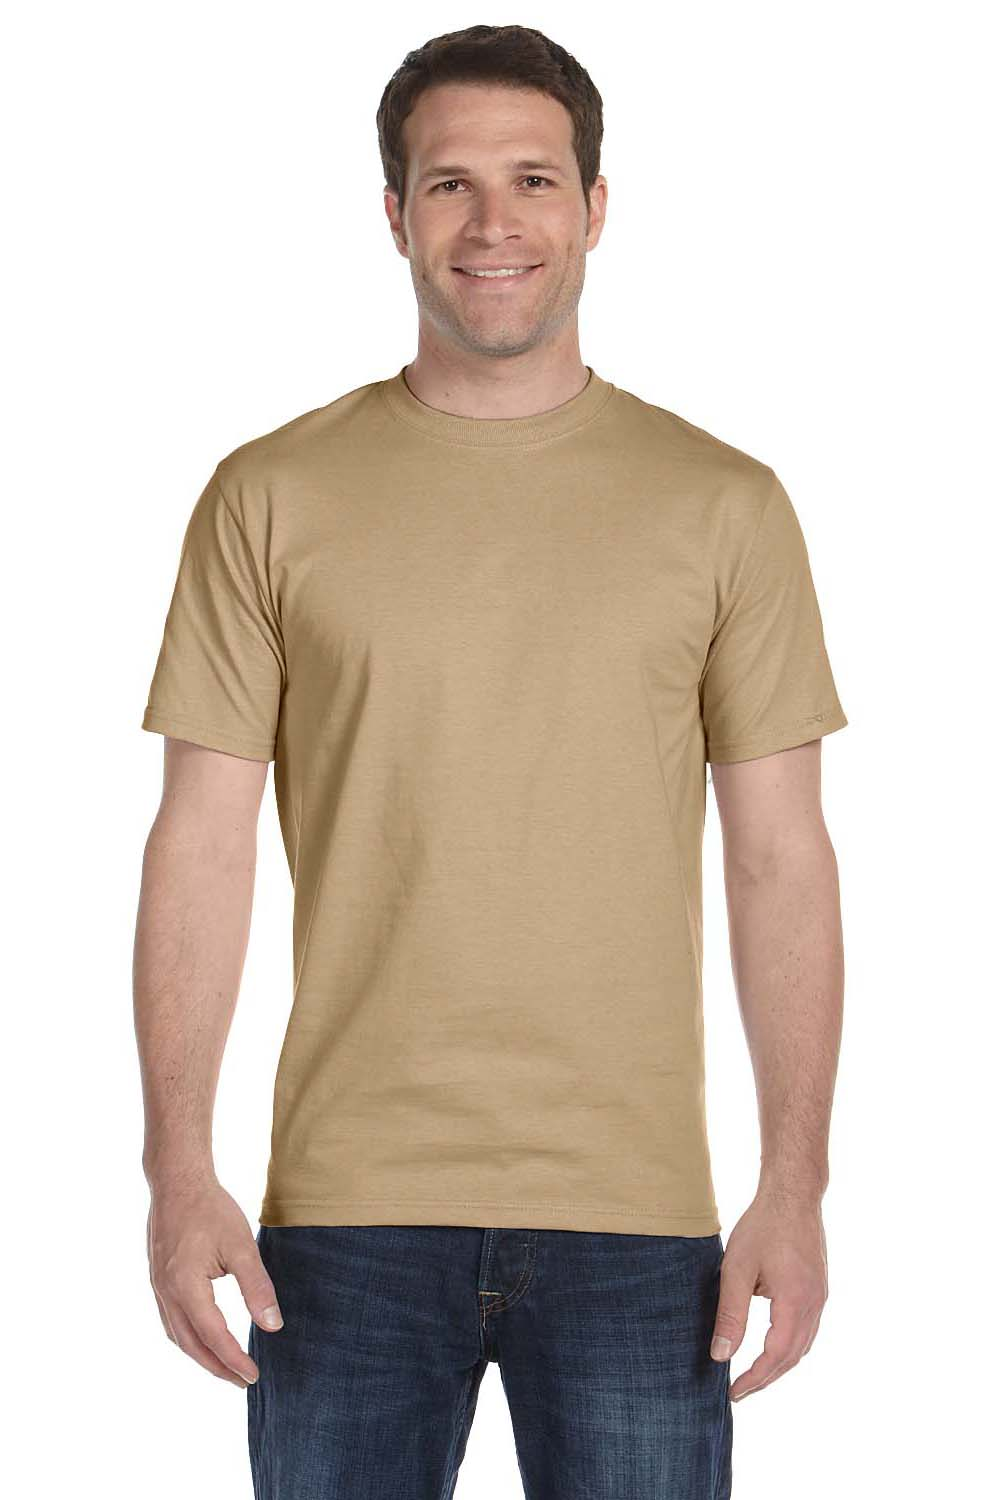 Hanes 5180 Mens Beefy-T Short Sleeve Crewneck T-Shirt Pebble Brown Front